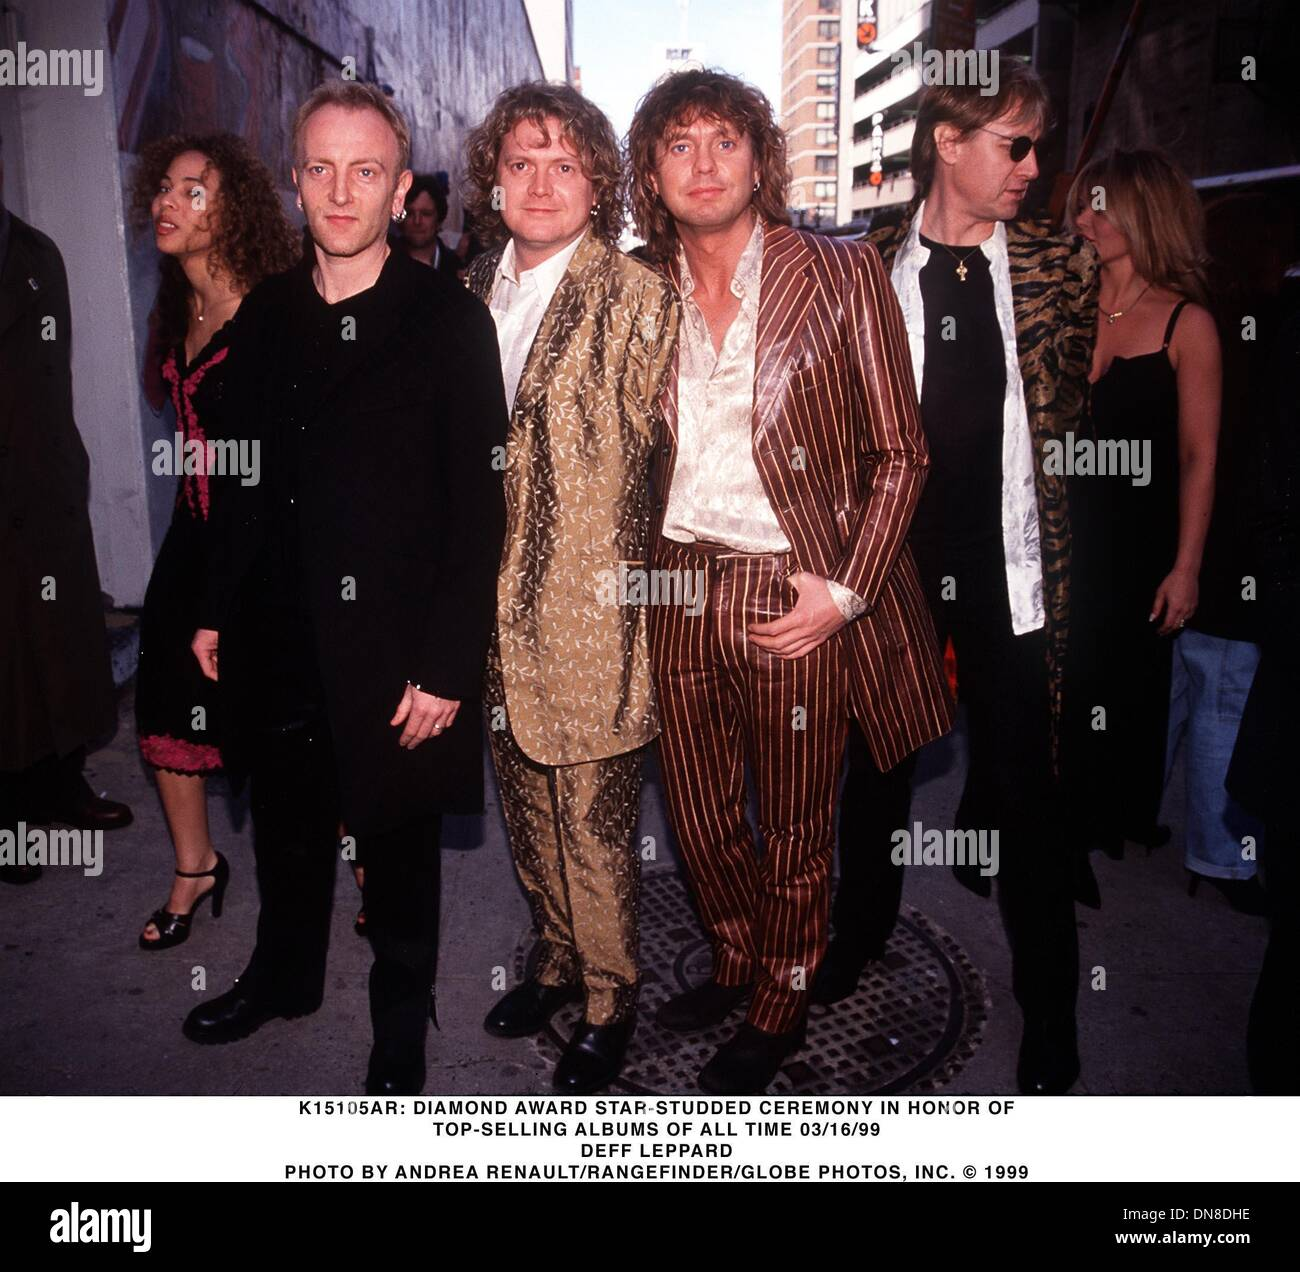 Mar. 16, 1999 - K15105AR      03/16/99.DIAMOND AWARD STAR-STUDDED CEREMONY .IN HONOR OF TOP-SELLING ALBUMS OF ALL Stock Photo